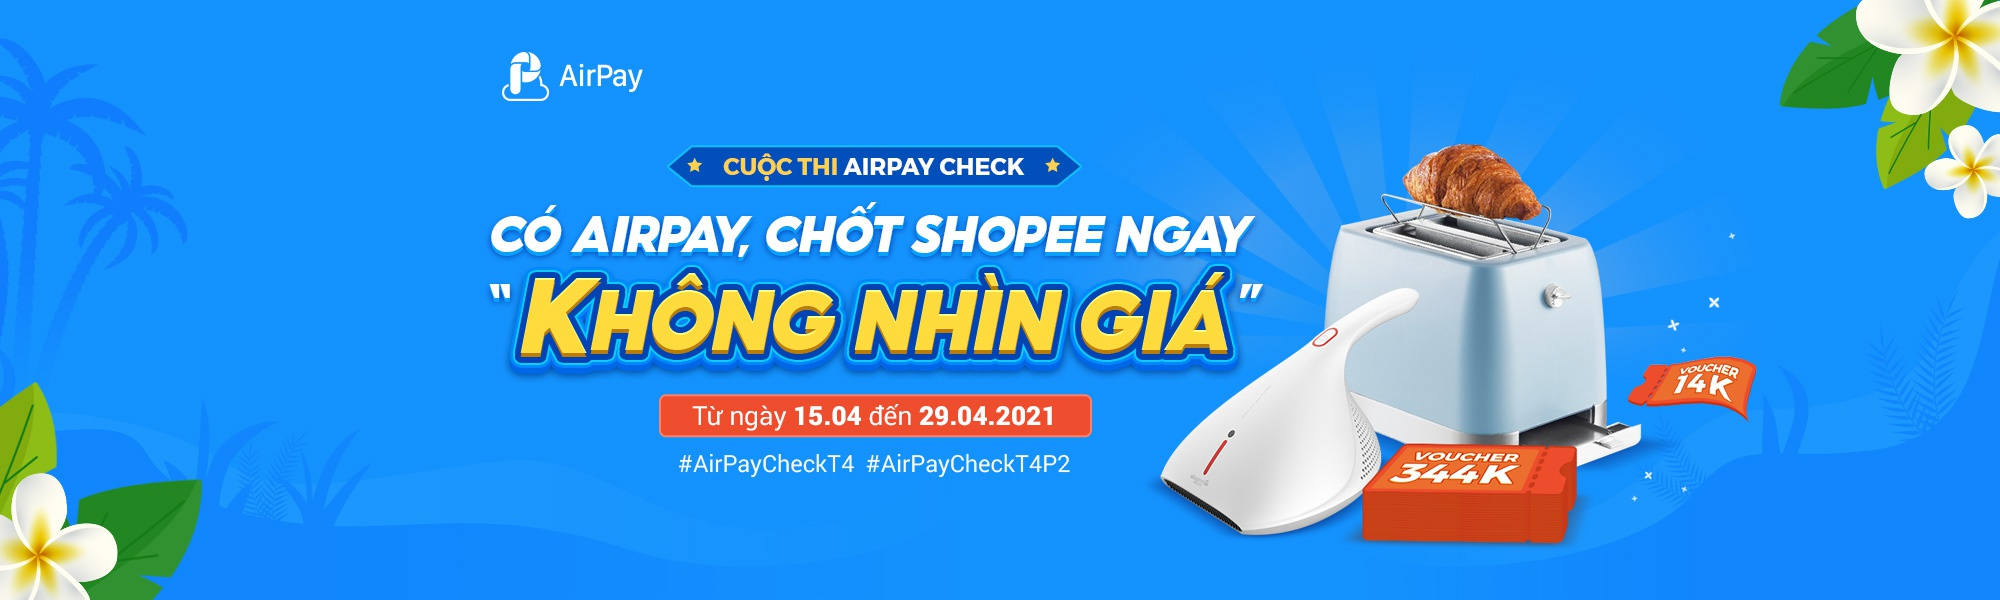 AirPay-Check